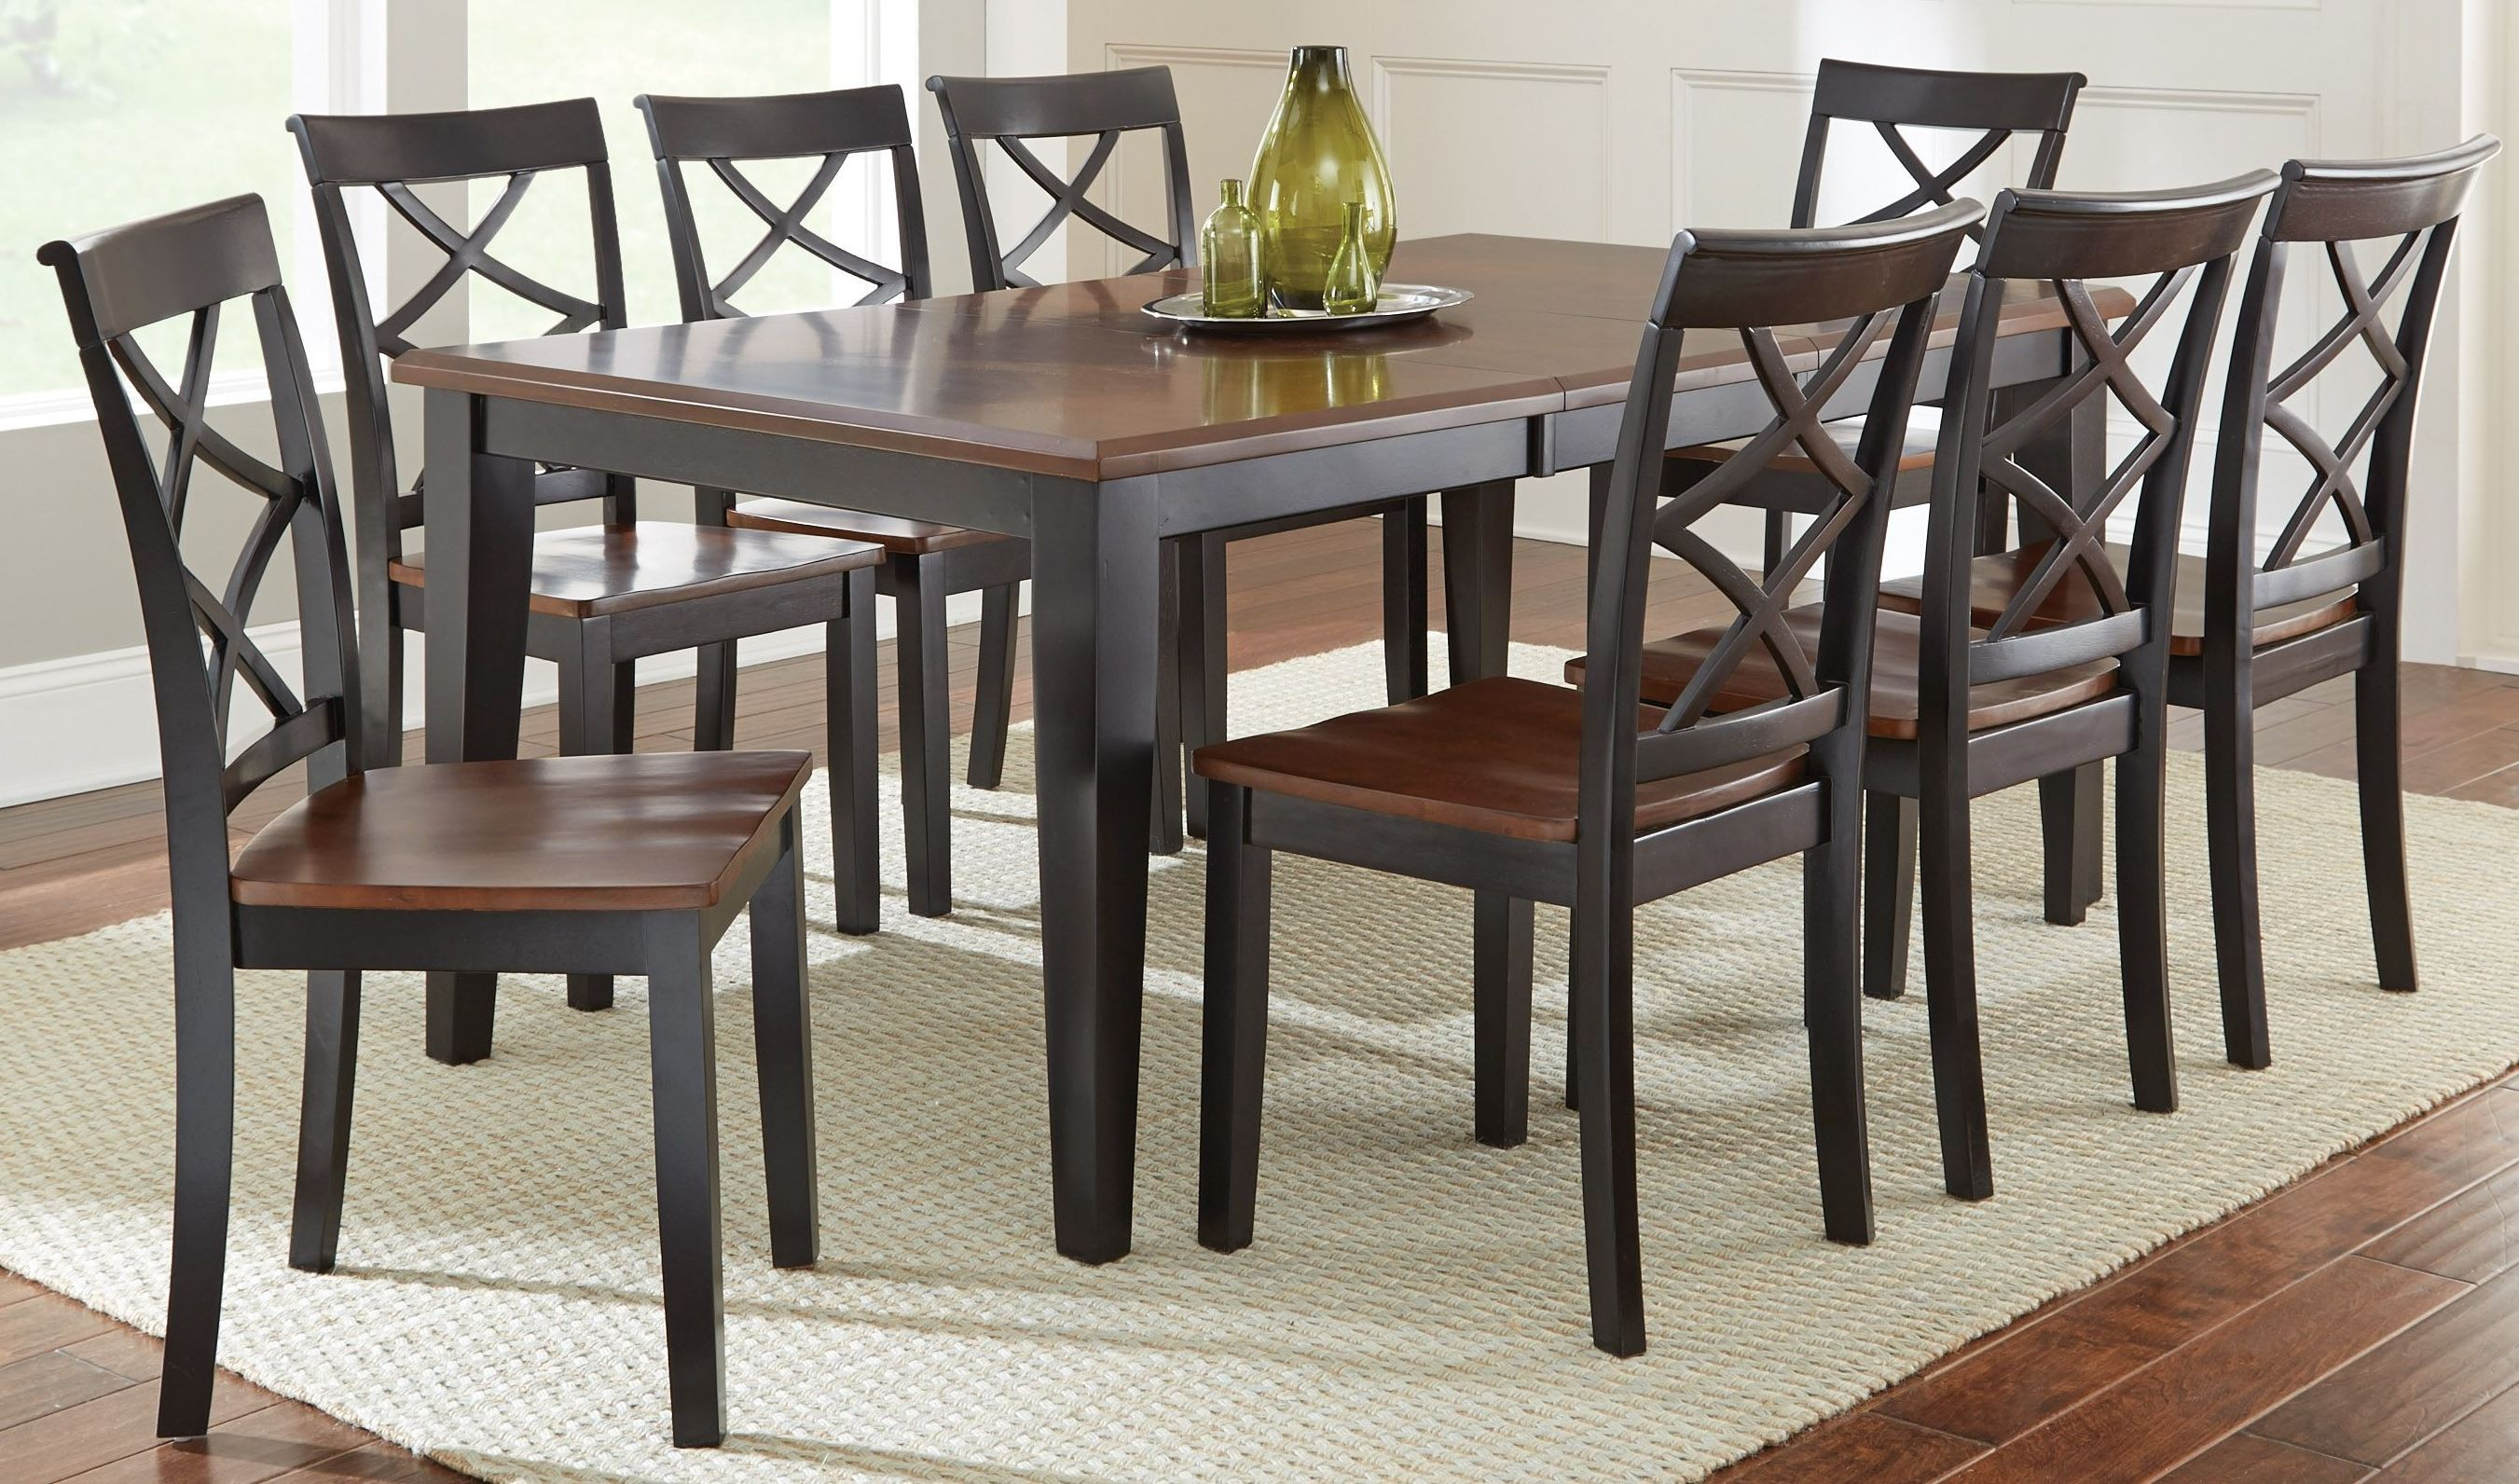 Rani Two Tone Extendable Rectangular Dining Room Set From Steve Silver RA500